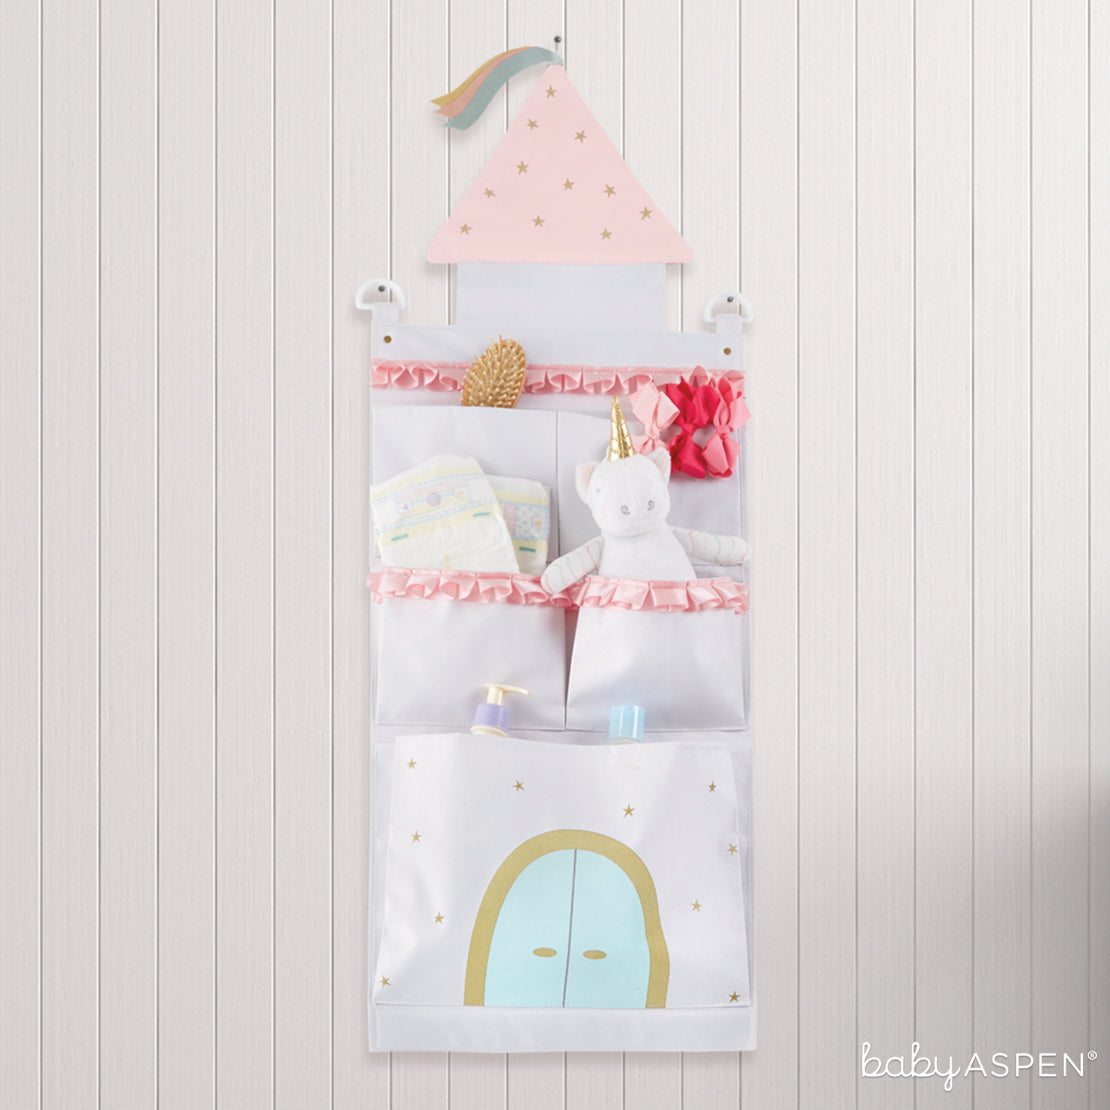 Simply Enchanted Castle Wall Organizer   7 Easy Room Decor From Baby to Toddler   Baby Aspen